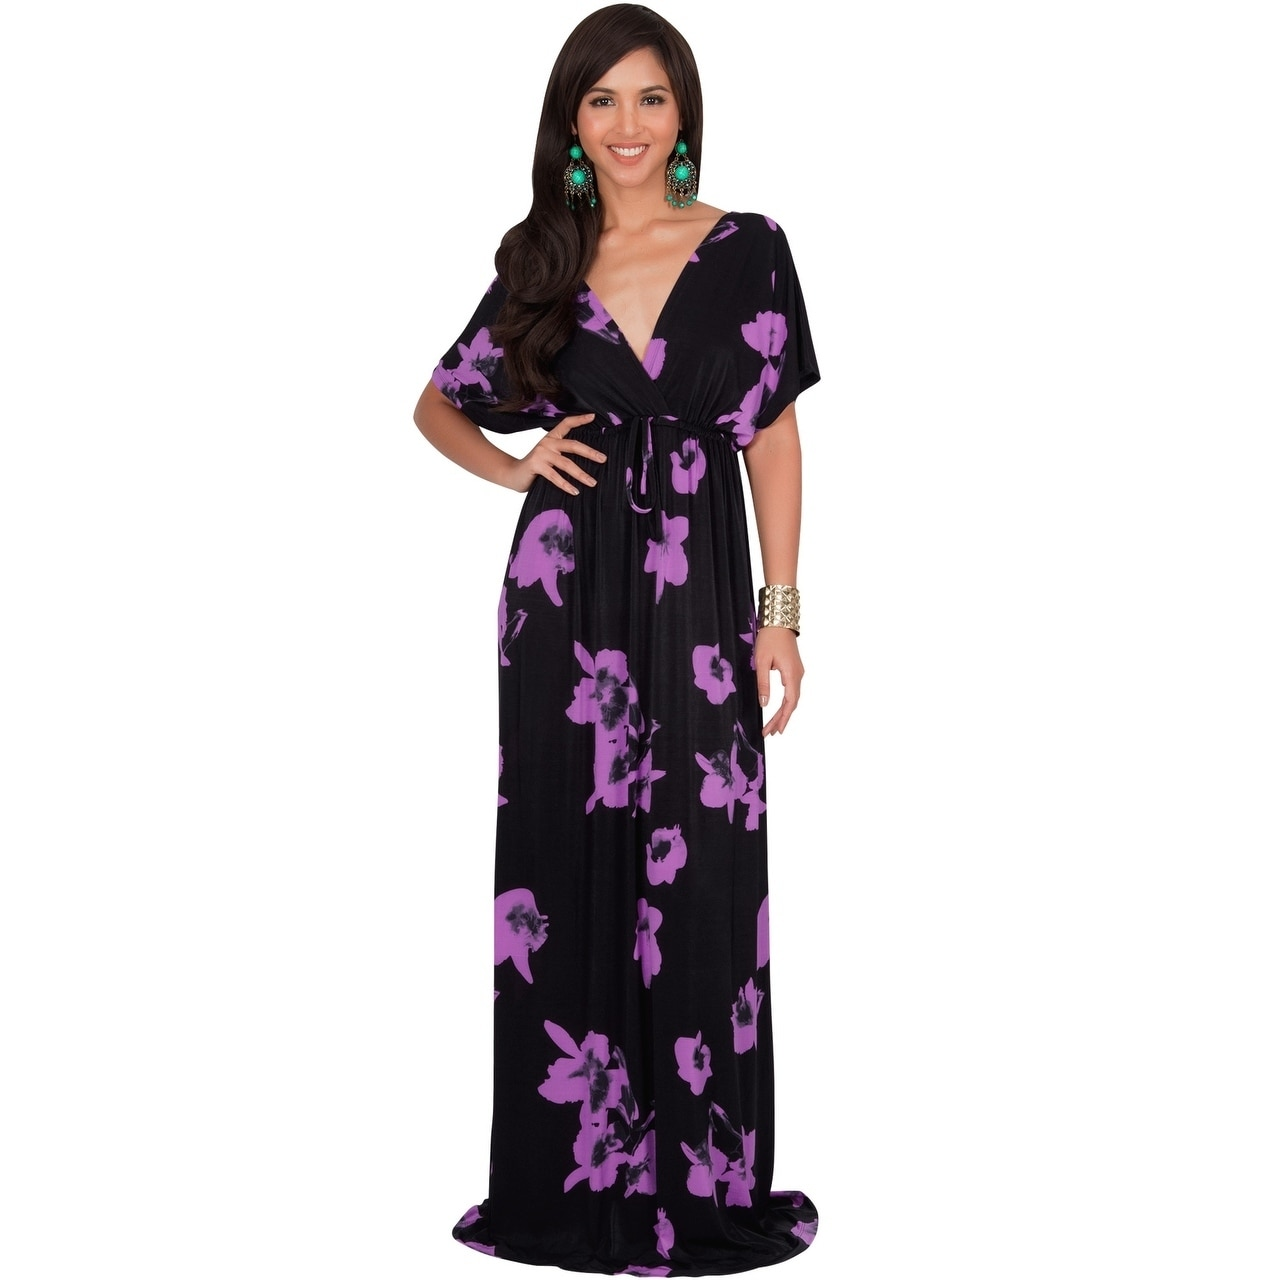 372cea142509 Shop KOH KOH Long Casual Summer Kimono Sleeve Floral Print Maxi Dress Gown  - Free Shipping Today - Overstock - 18915604